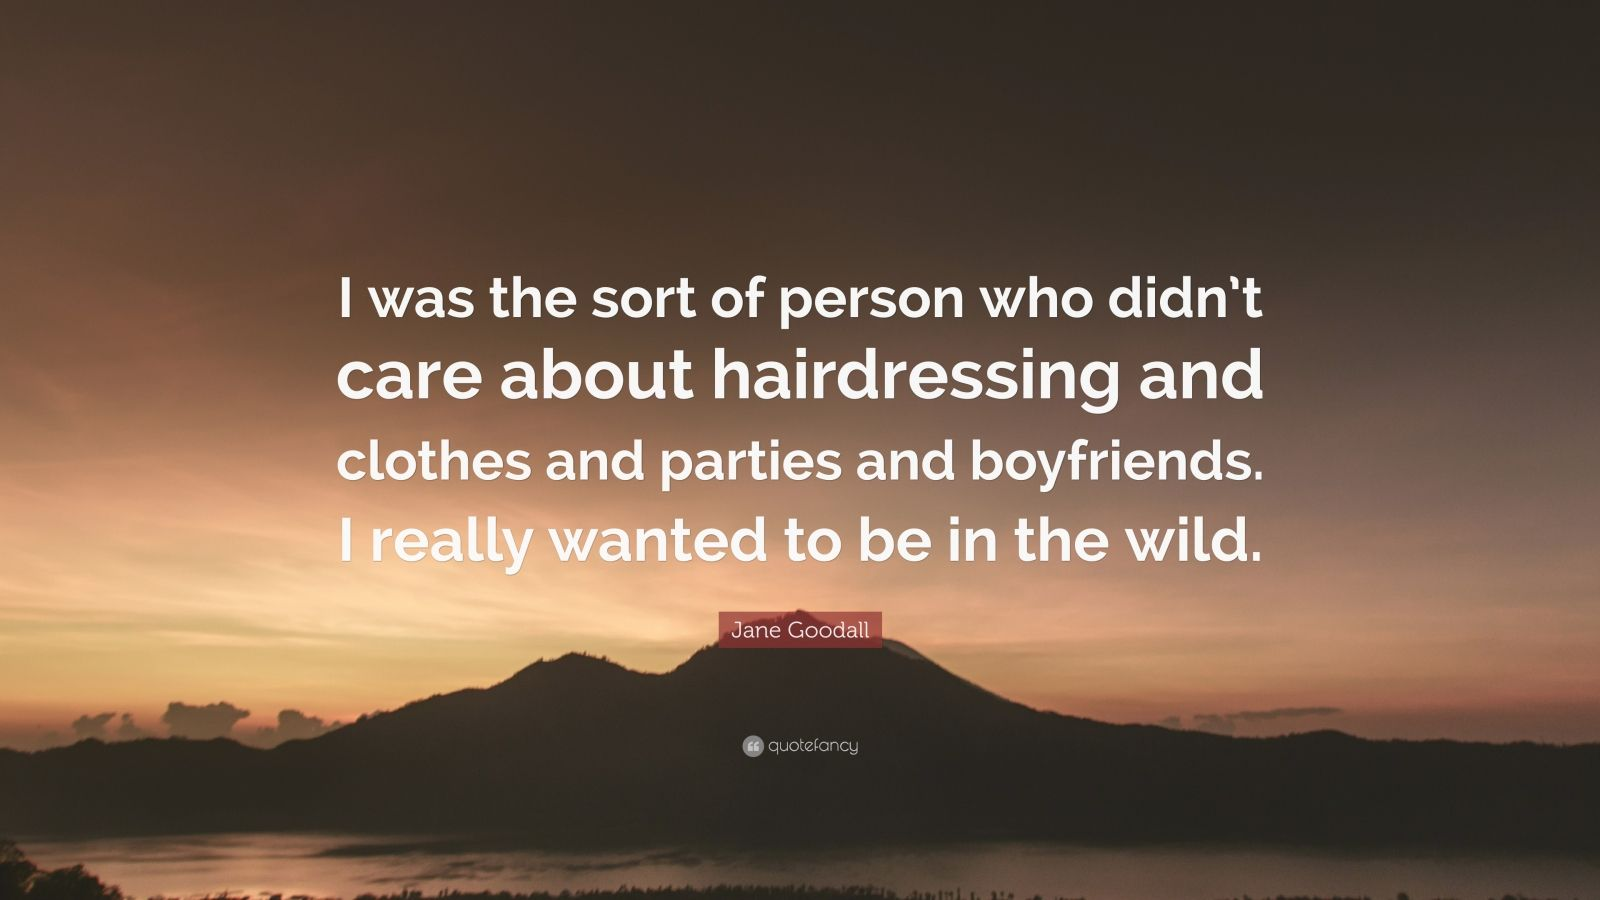 """Jane Goodall Quote: """"I was the sort of person who didn't care about hairdressing and clothes and parties and boyfriends. I really wanted to be in the wild."""""""